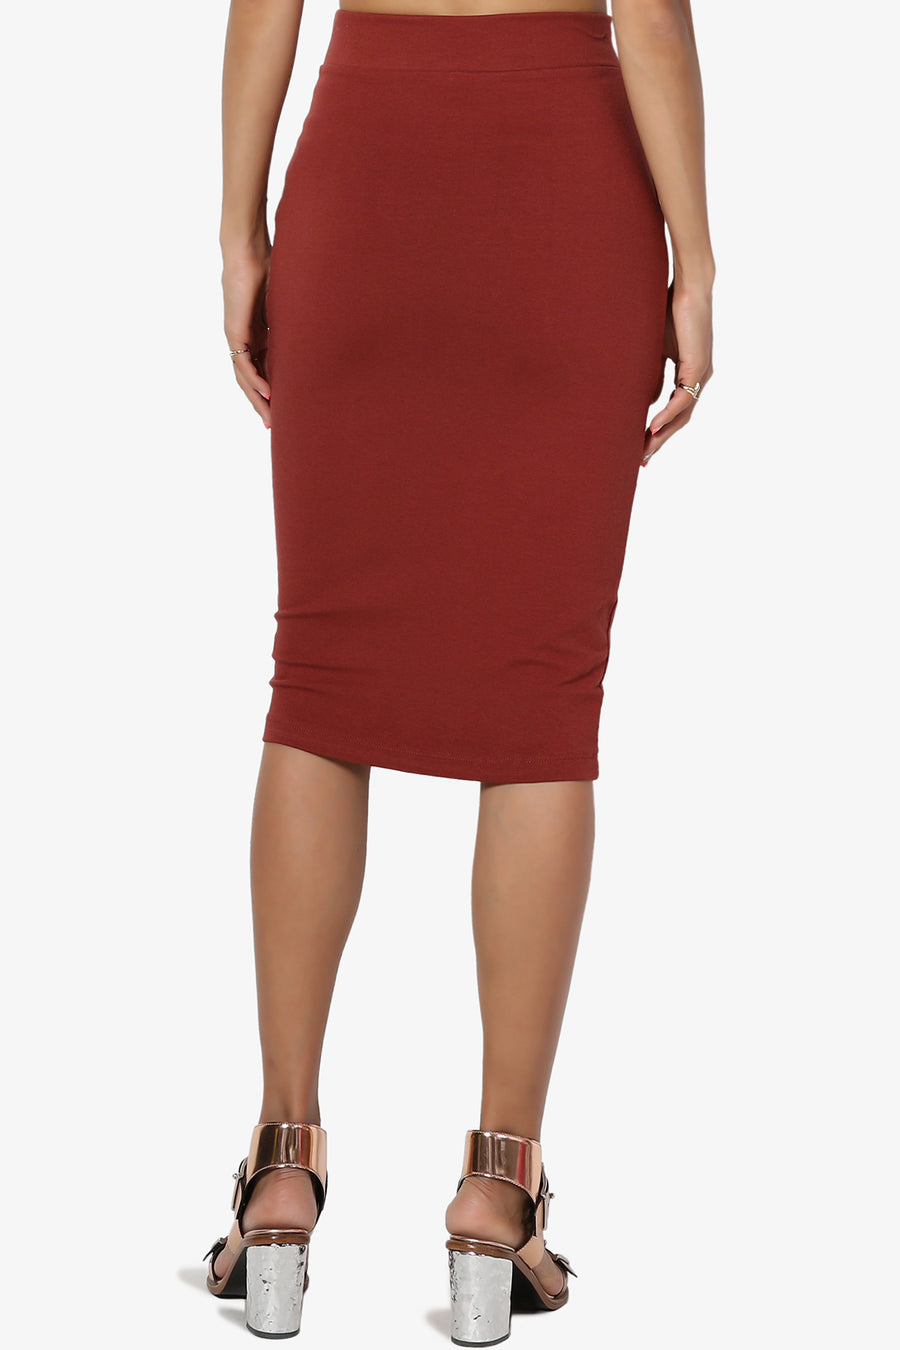 Karan Cotton Midi Skirt ADD COLOR